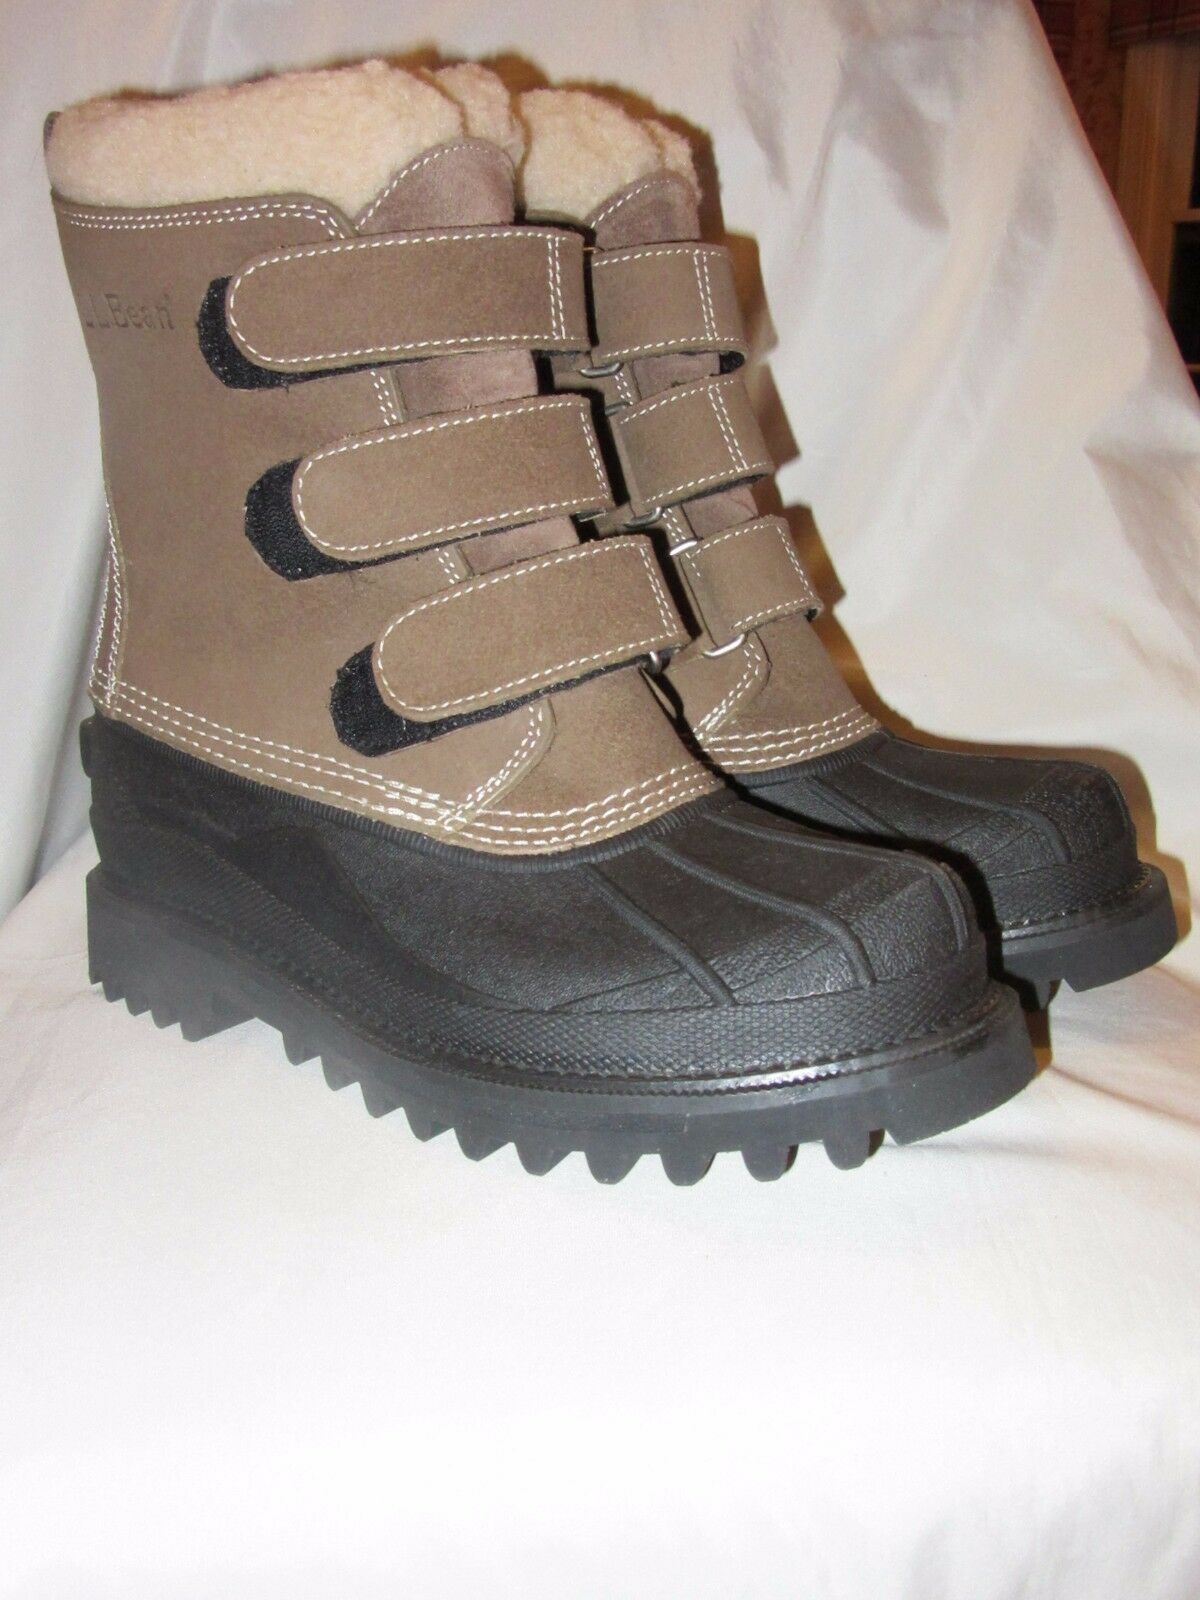 NEW NEW NEW L.L. BEAN damen STORMCHASER INSULATED MID-CALF WINTER SNOW Stiefel8 M 48a3bc